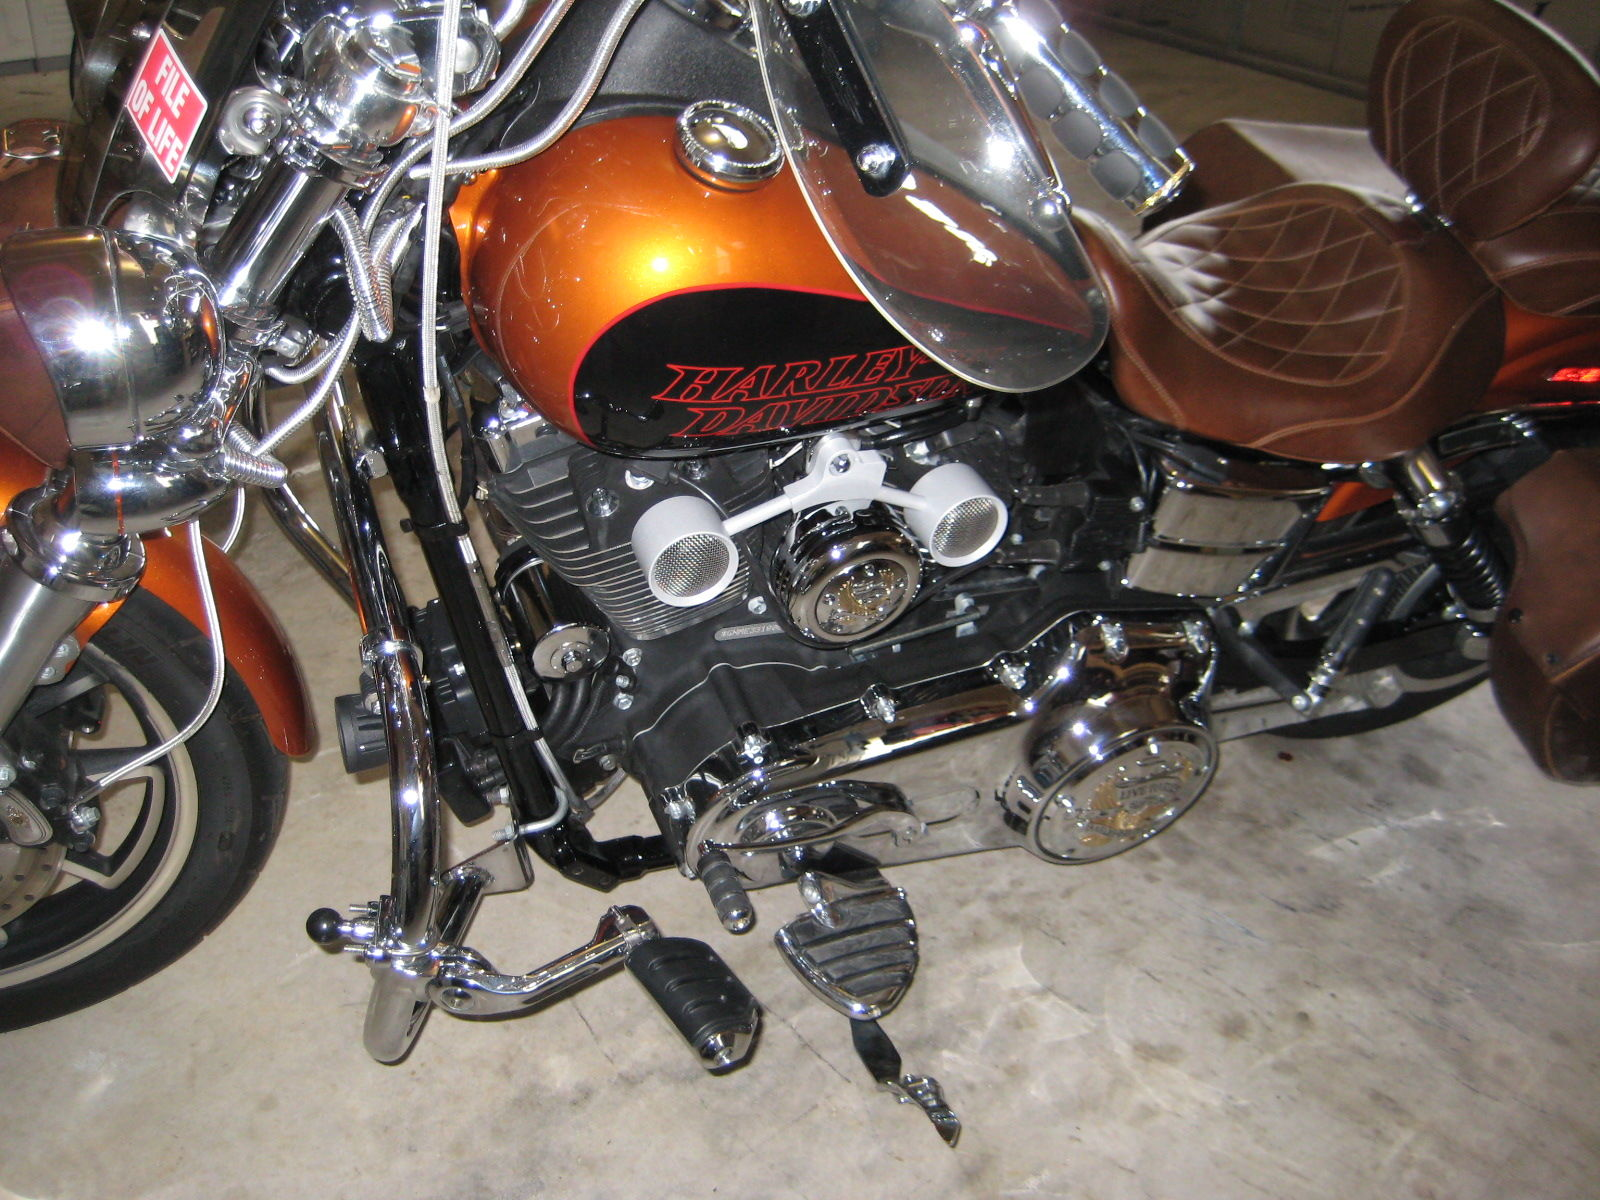 2014 Low Rider FXDL Ignition Switch Relocation - Page 2 - Harley ...